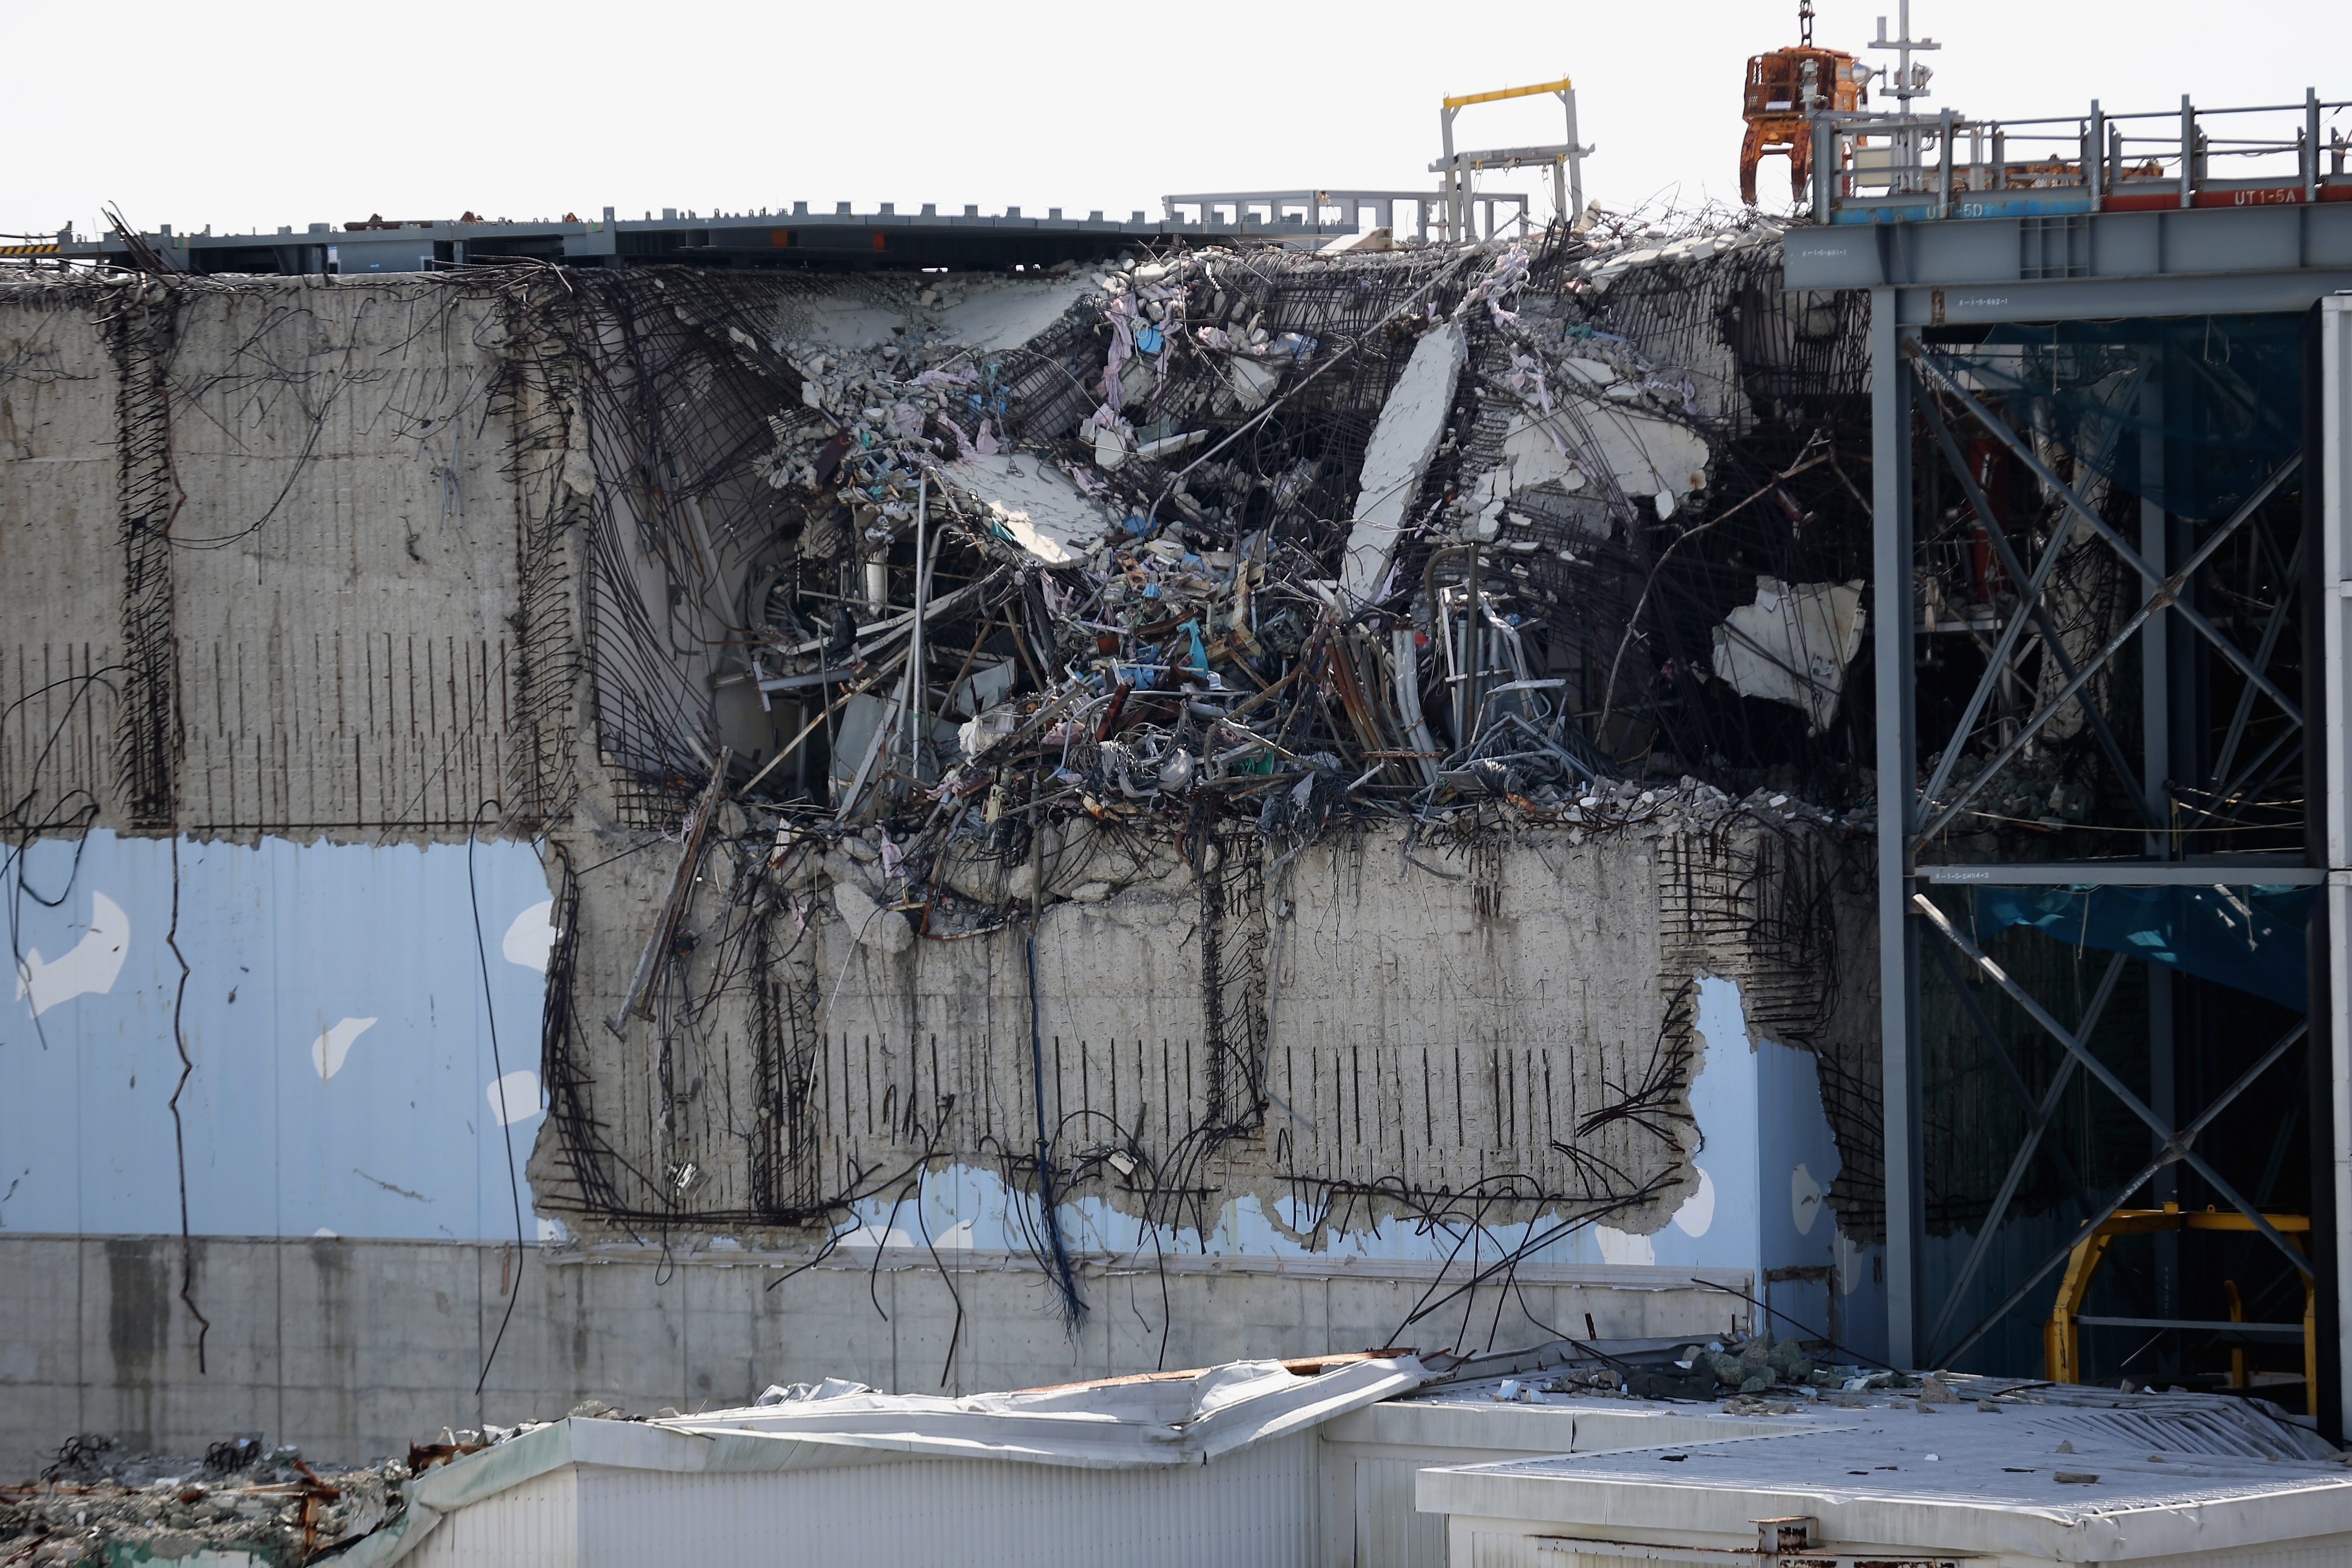 A general view of damage to No. 3 reactor building at Fukushima Daiichi nuclear power plant. (Christopher Furlong/Getty Images)